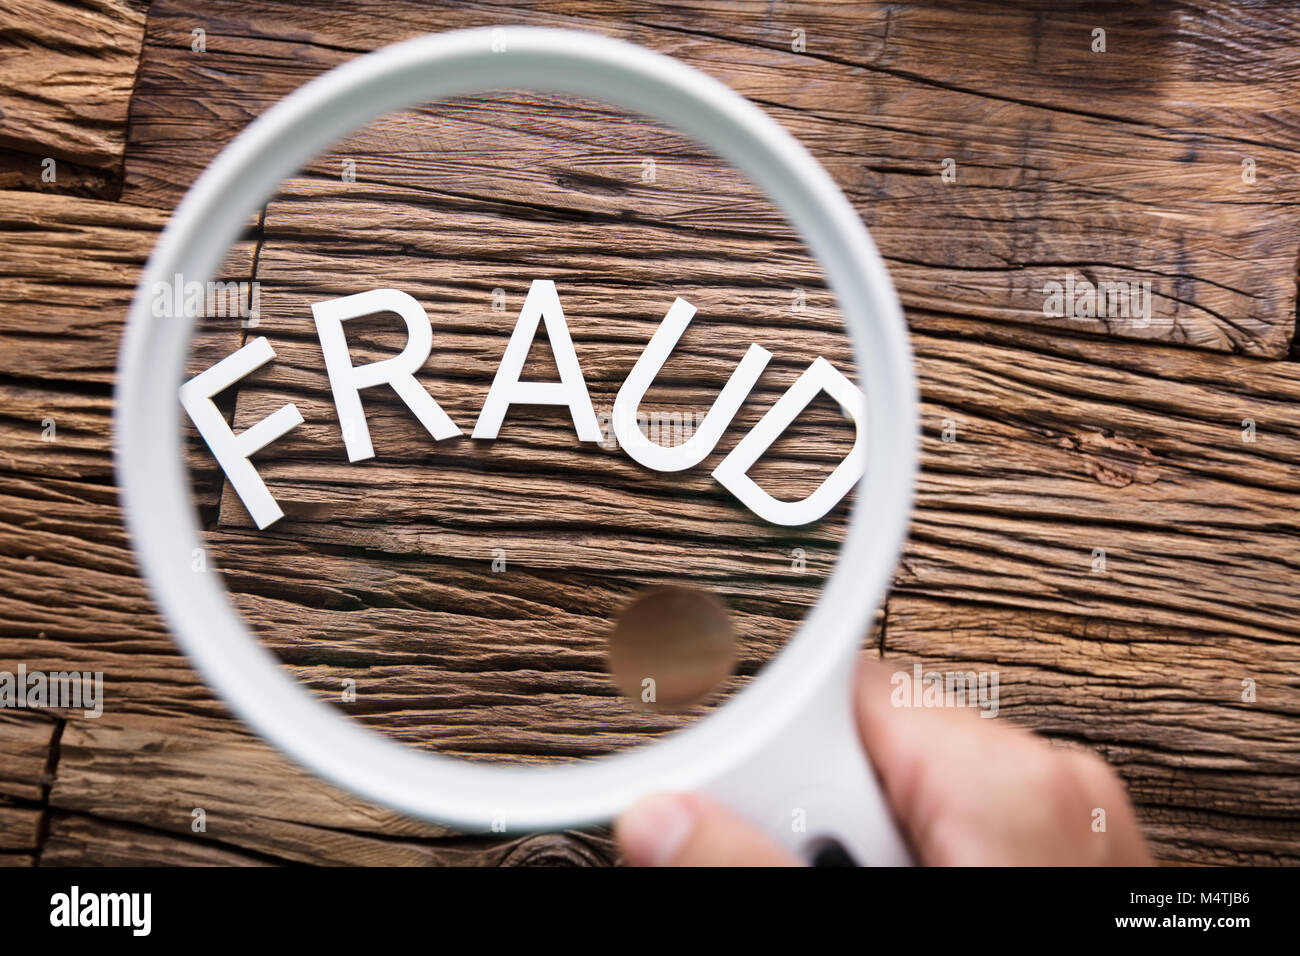 A Person Looking At White Fraud Text Through Magnifying Glass - Stock Image